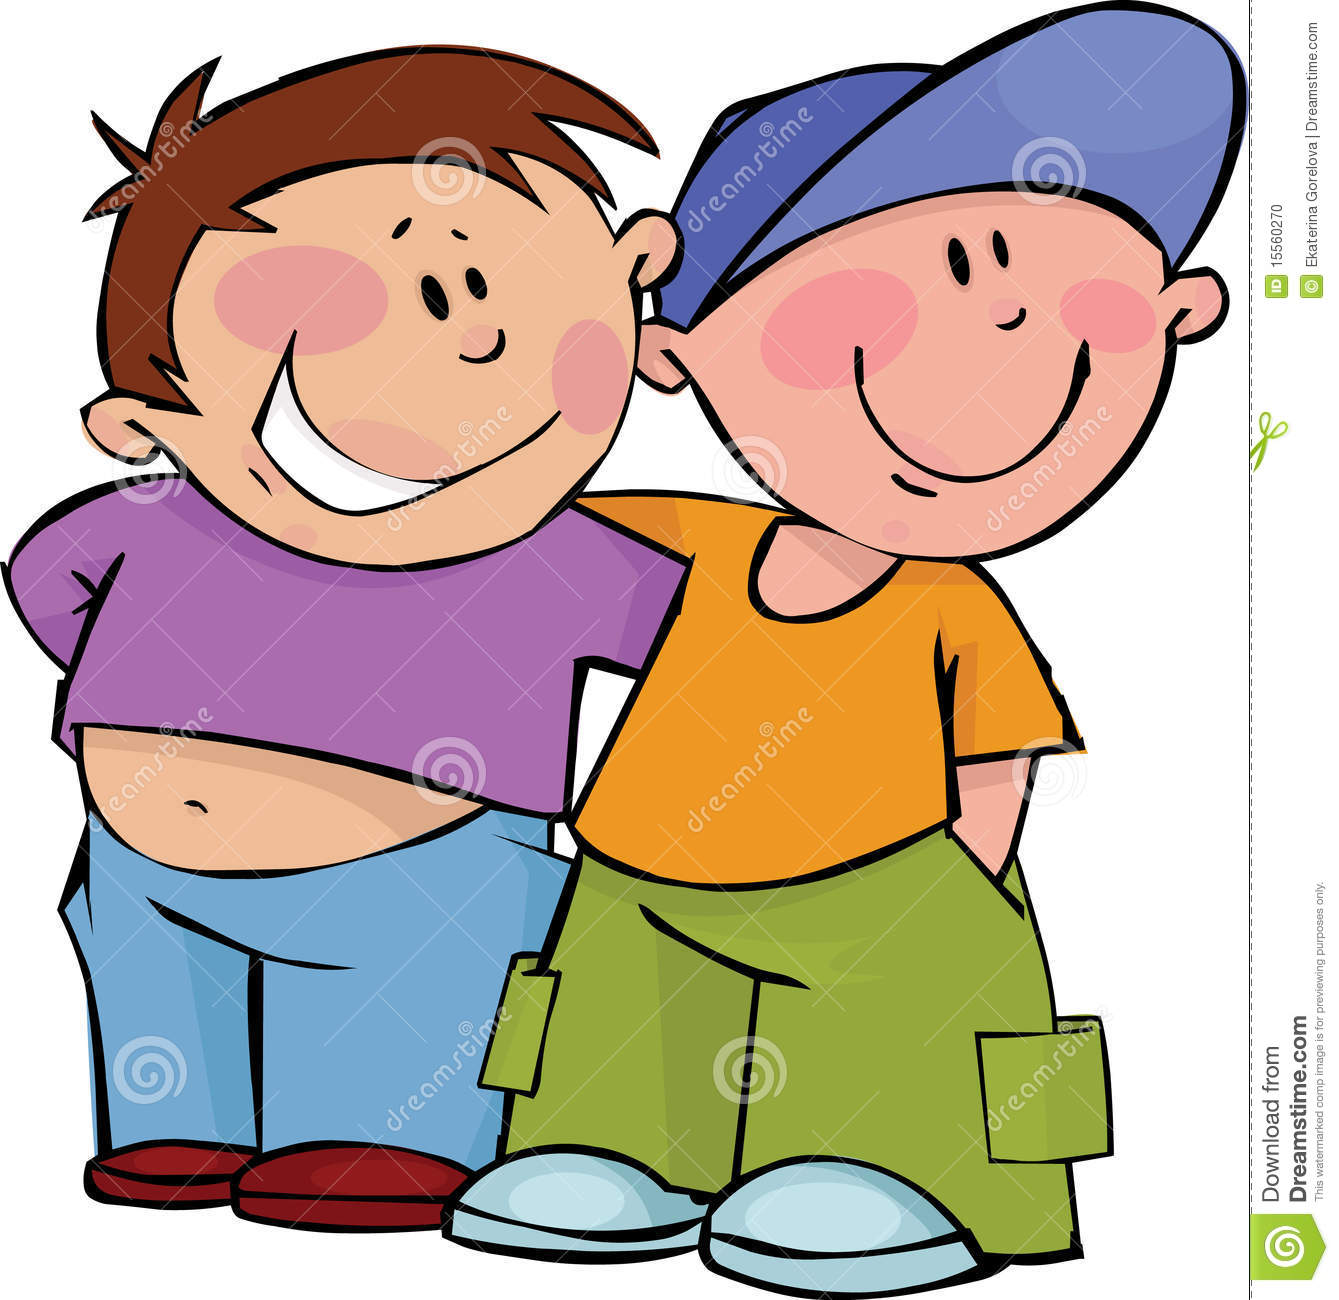 Two Friends Clipart | Clipart Panda - Free Clipart Images